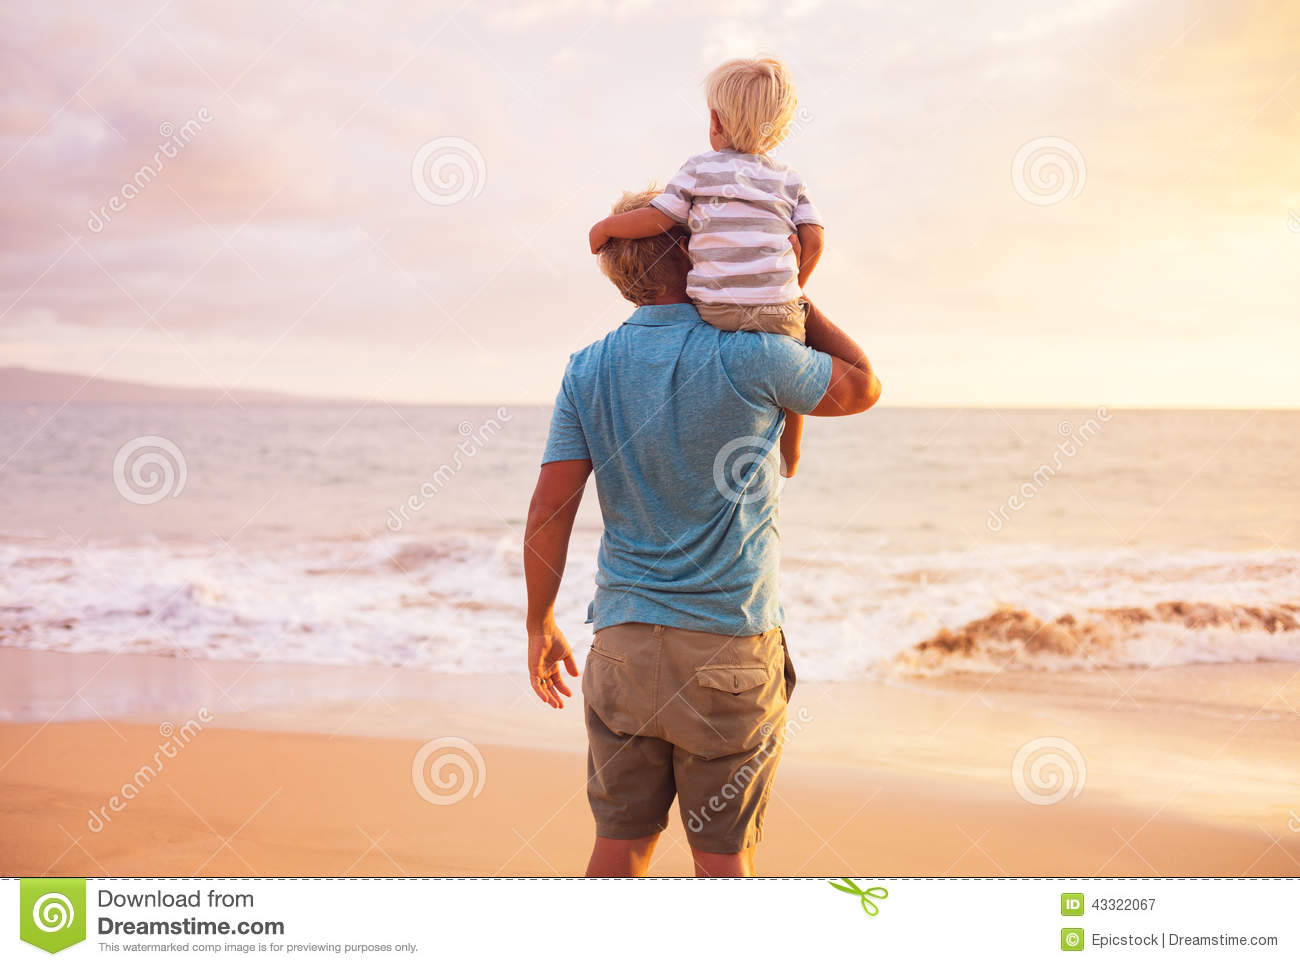 Father and Son stock image. Image of enjoy ab907aca705